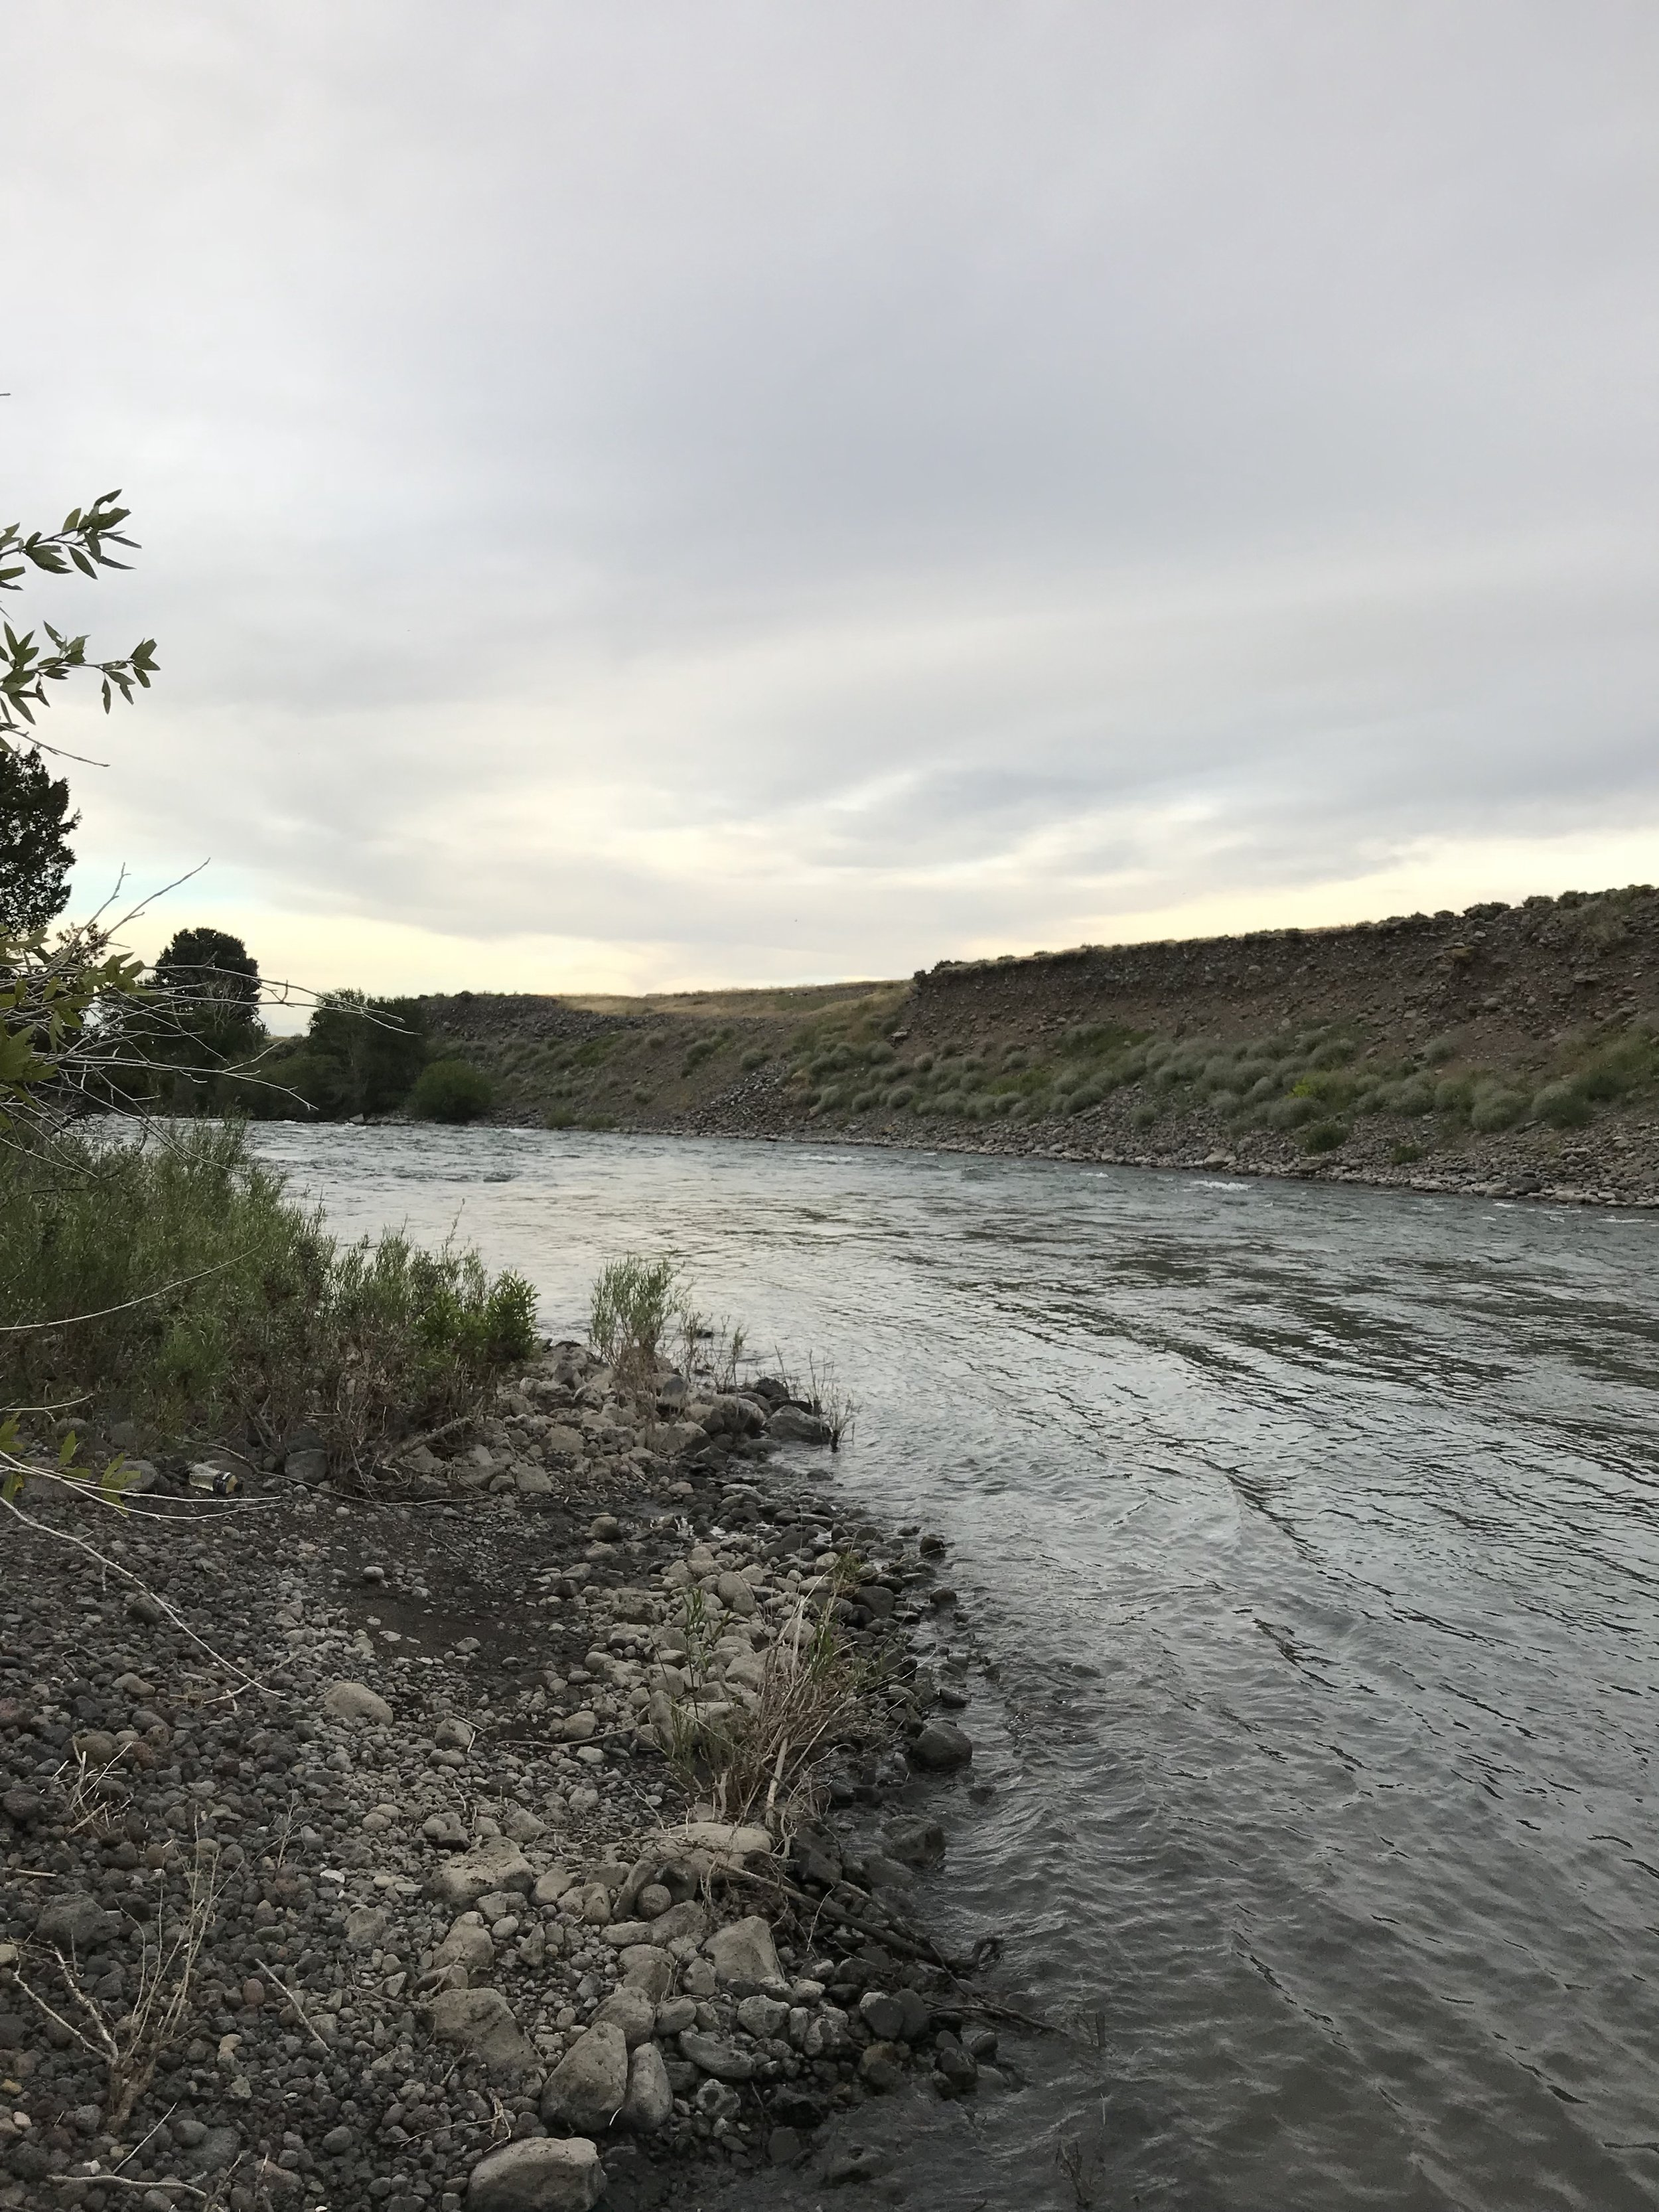 North fork, Shoshone River, Wyoming, Tuesday evening, July 17, 2018.